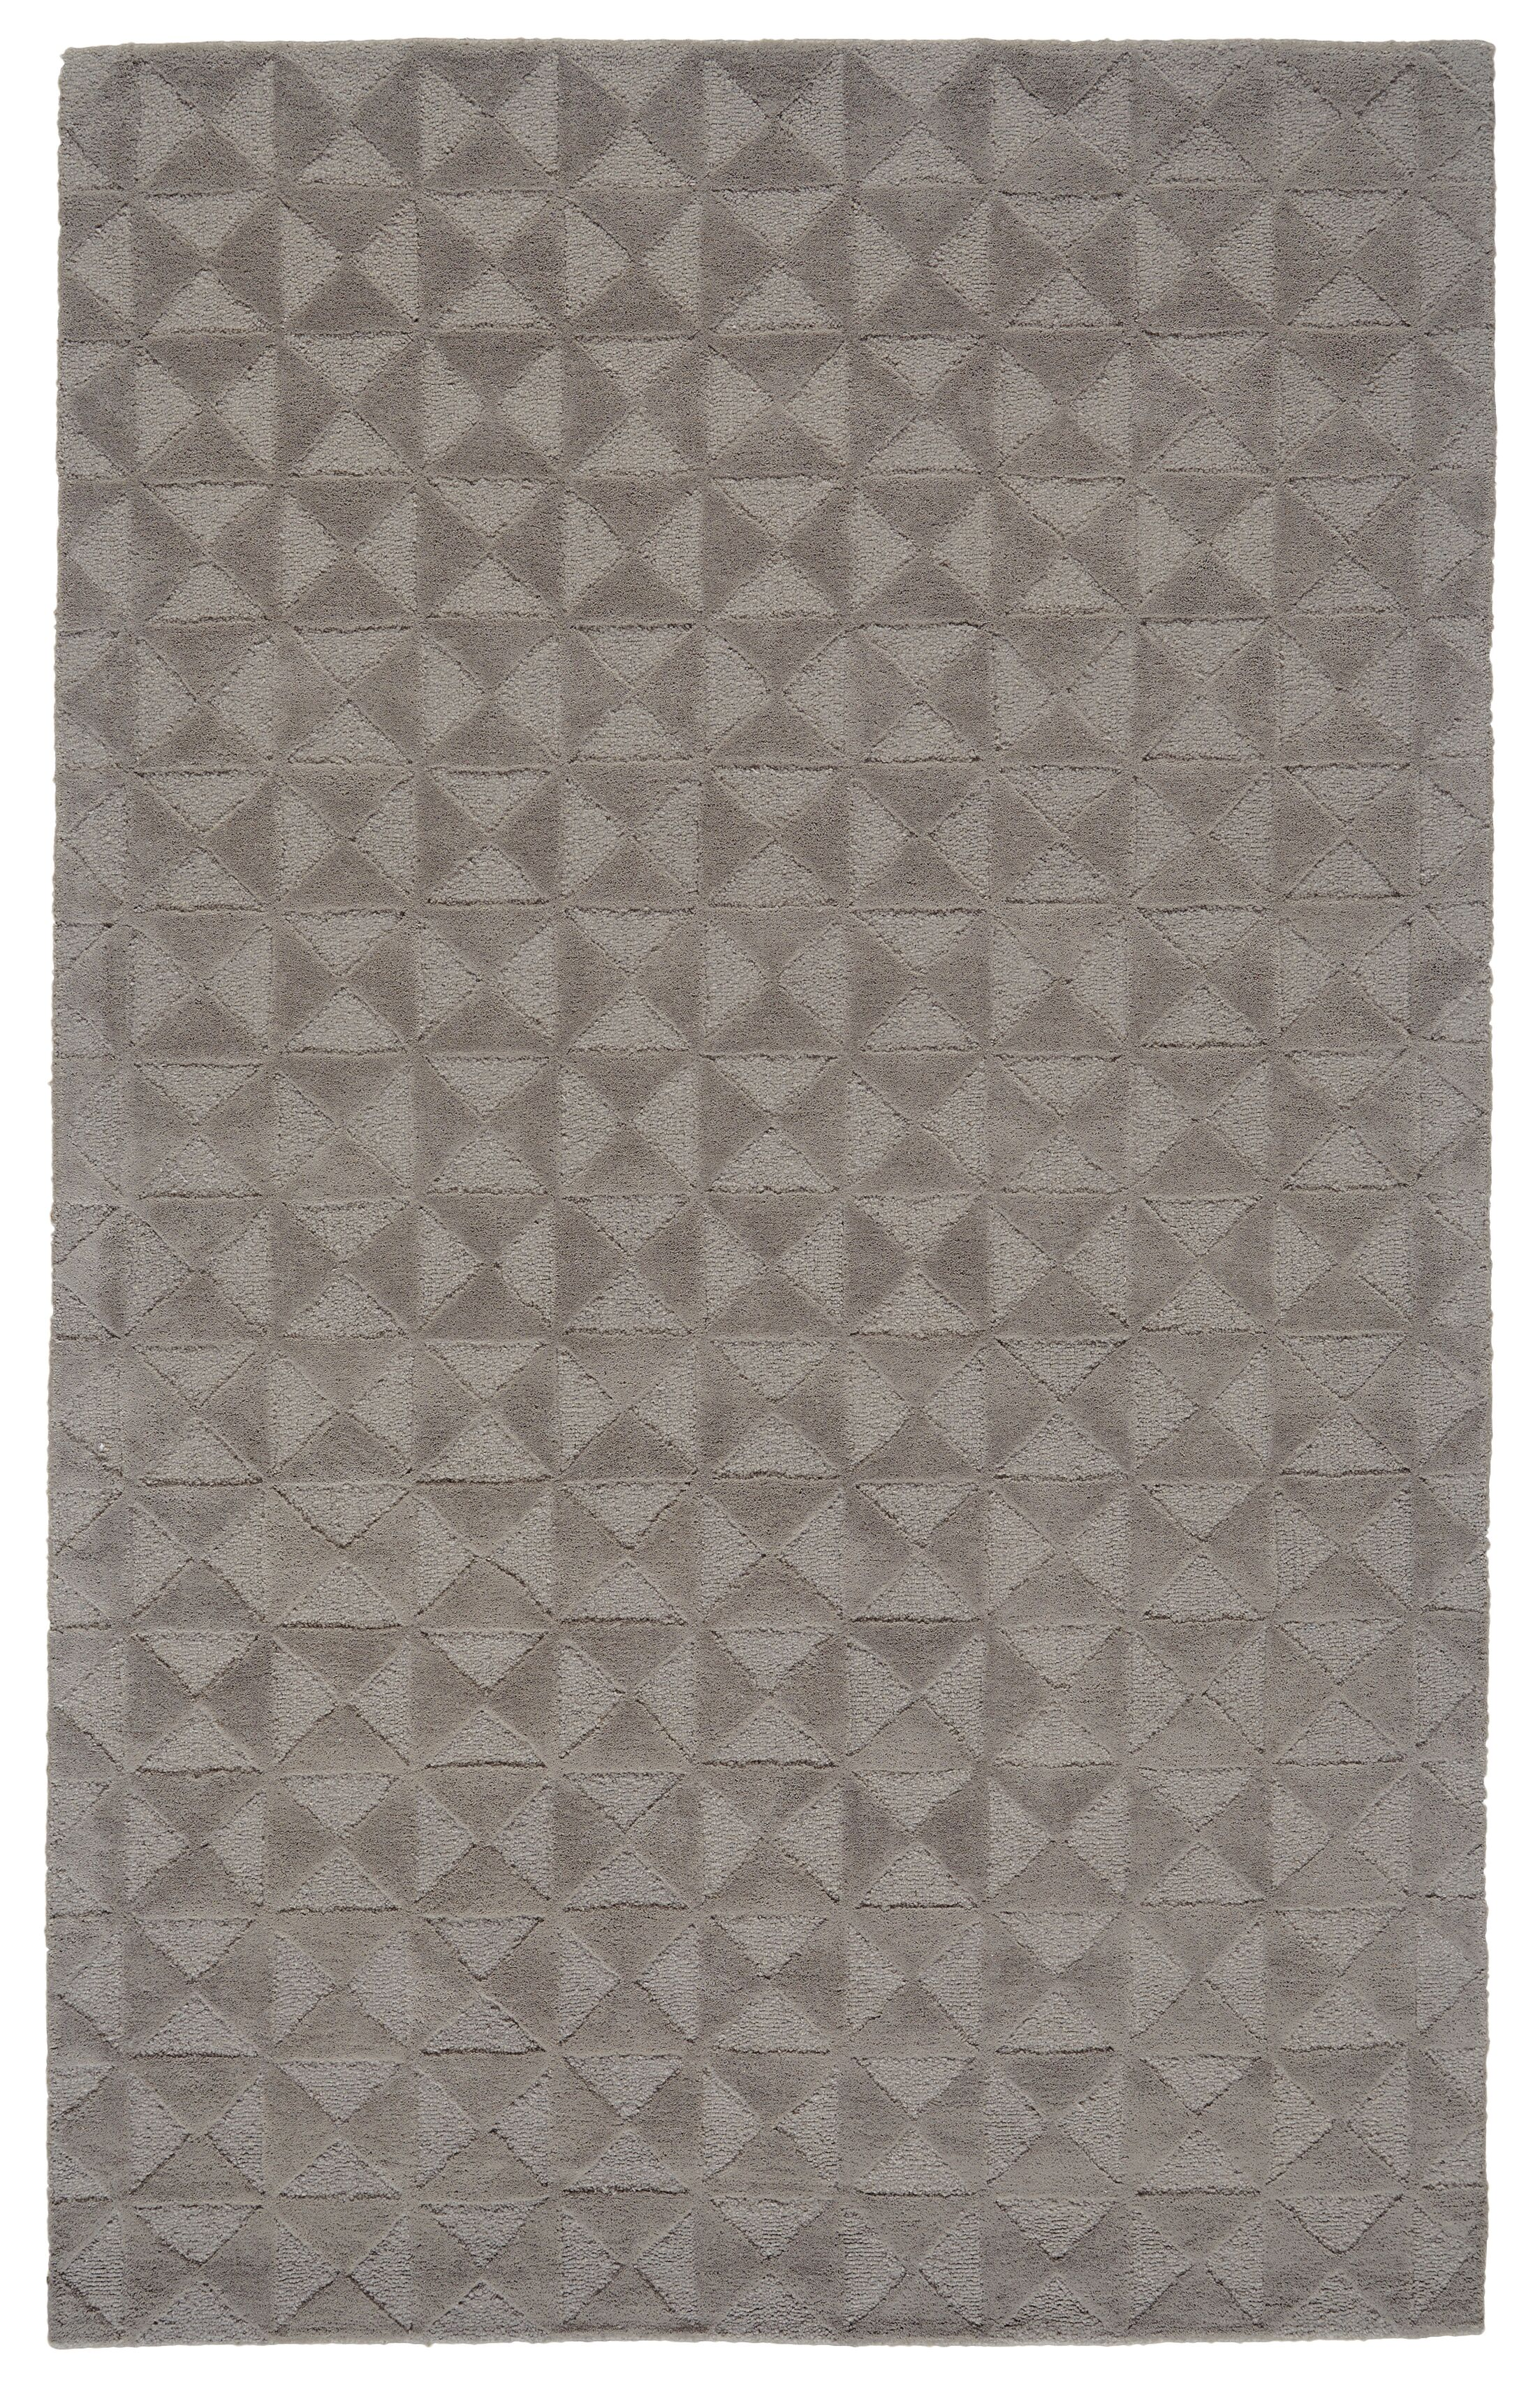 Mcnab Hand-Tufted Wool Cool/Gray Area Rug Rug Size: Rectangle 8' x 11'